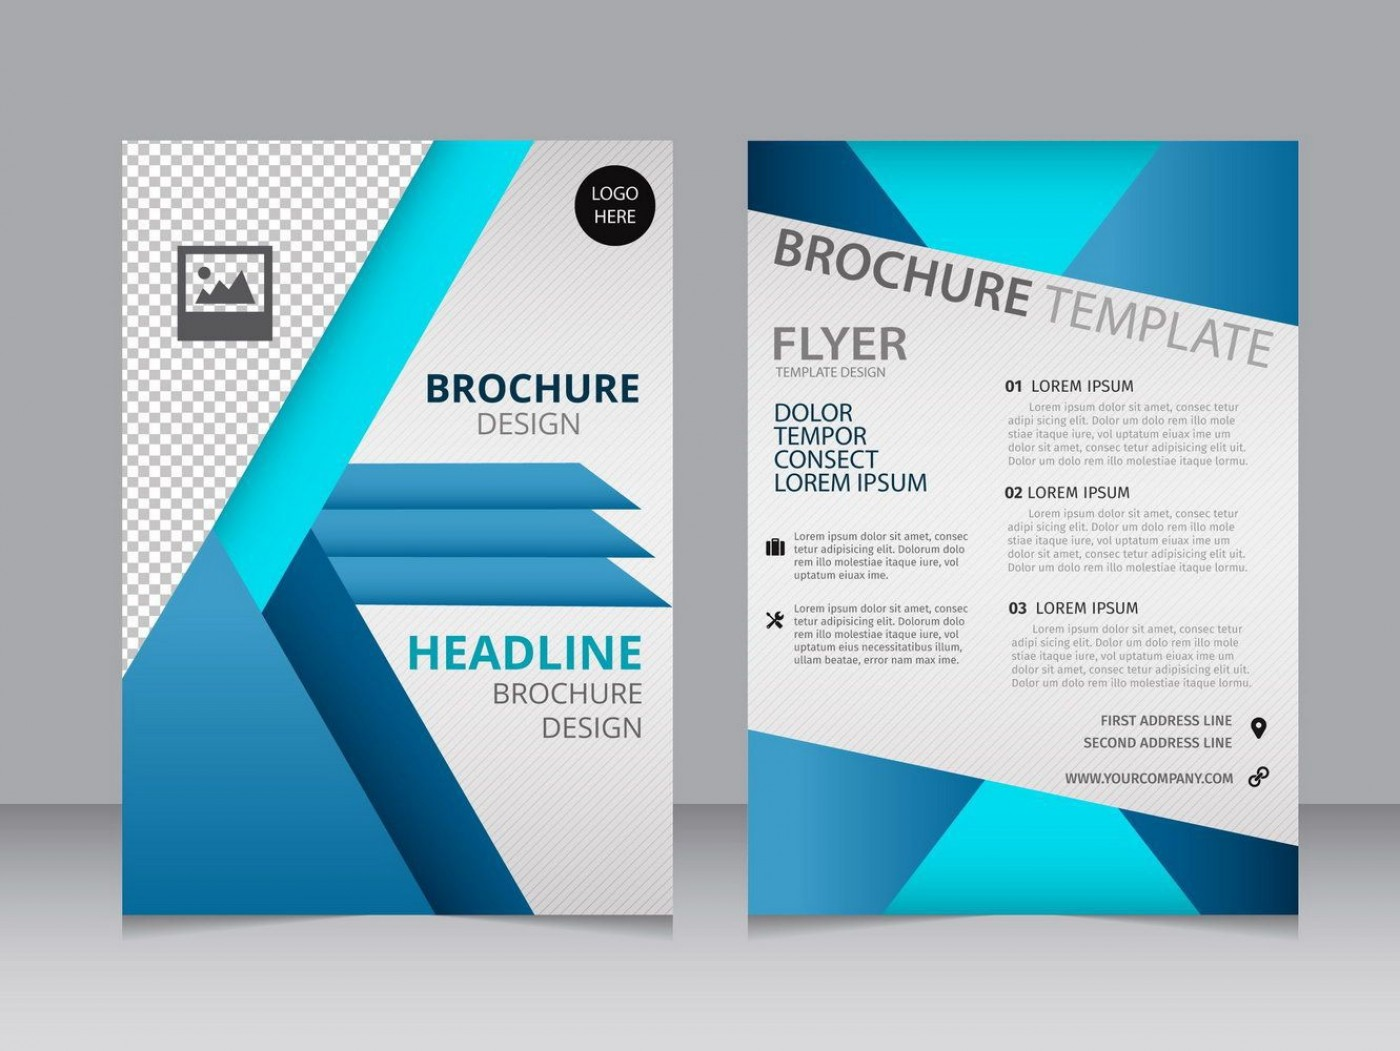 003 Awful Word Template Free Download Image  M Design Best Cv Microsoft 20191400